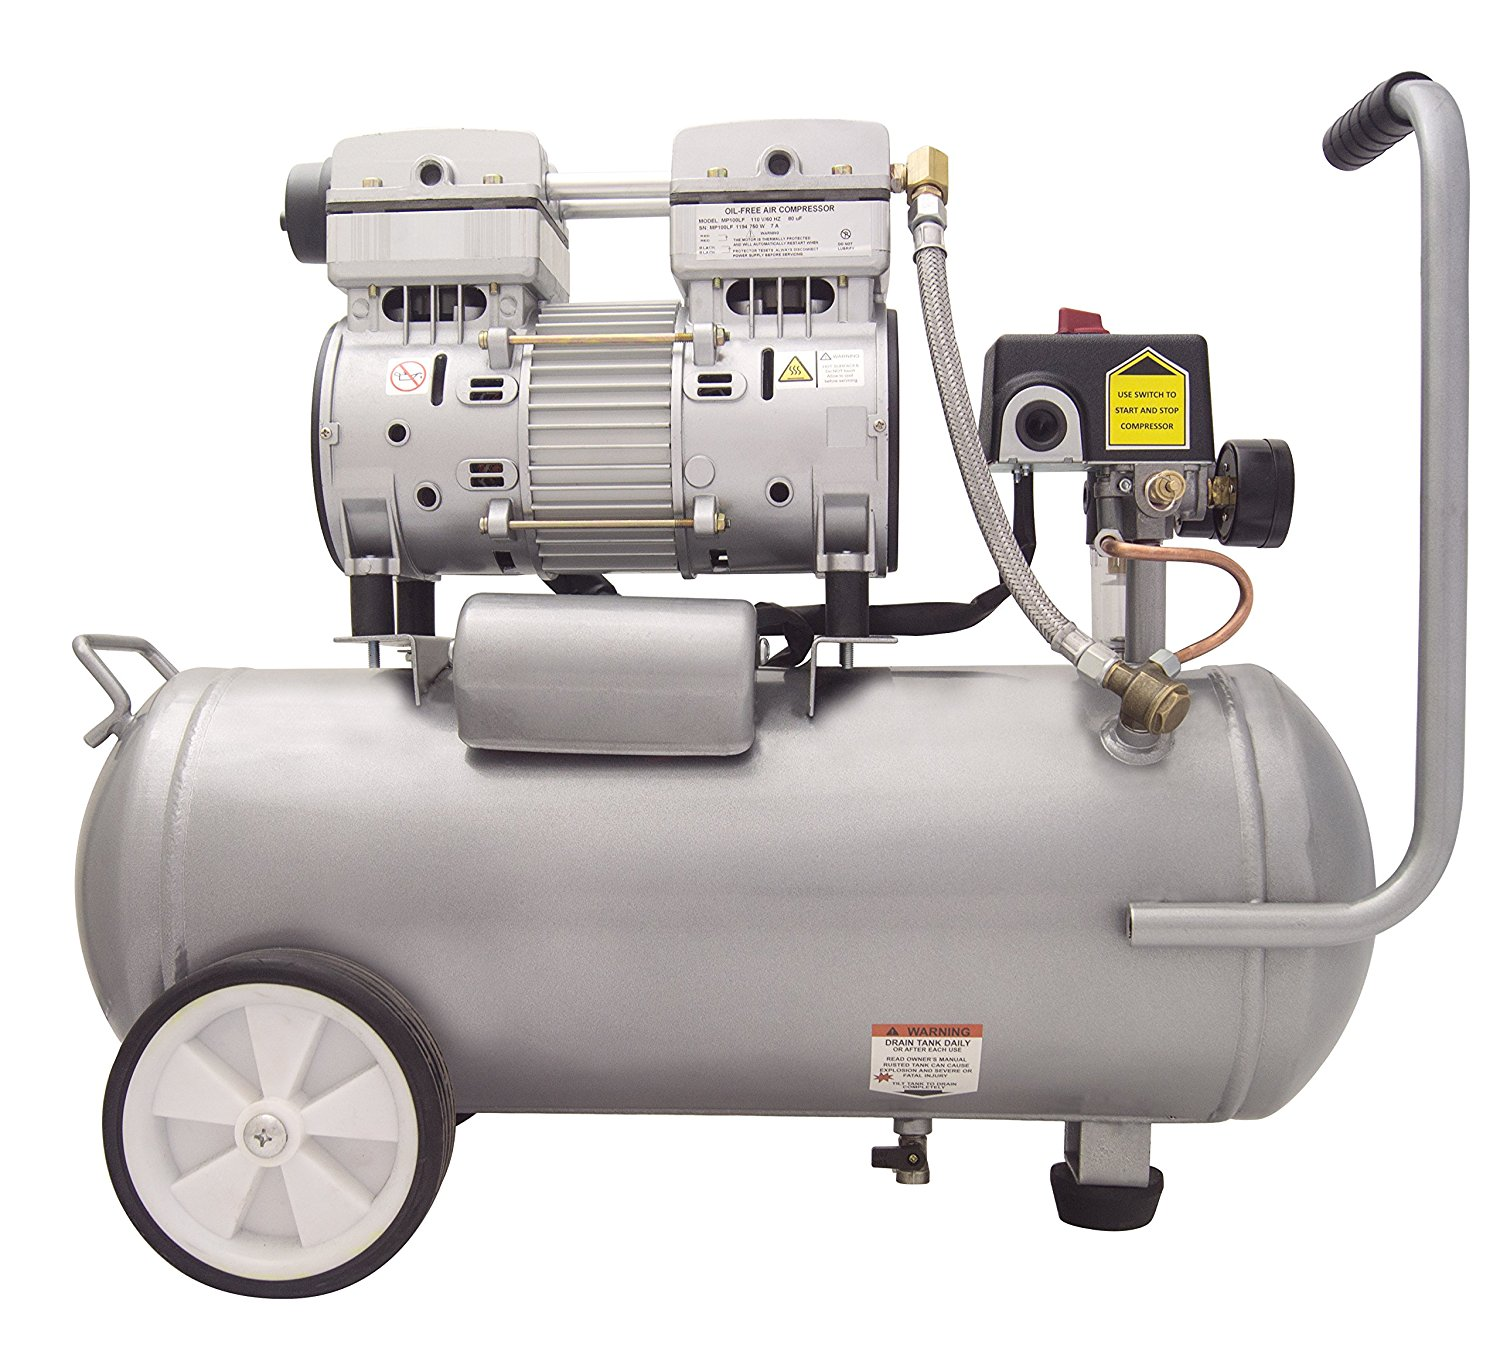 Central Pneumatic Air Compressor Reviews >> The Best Air Compressor Reviews - Air Compressor Journal